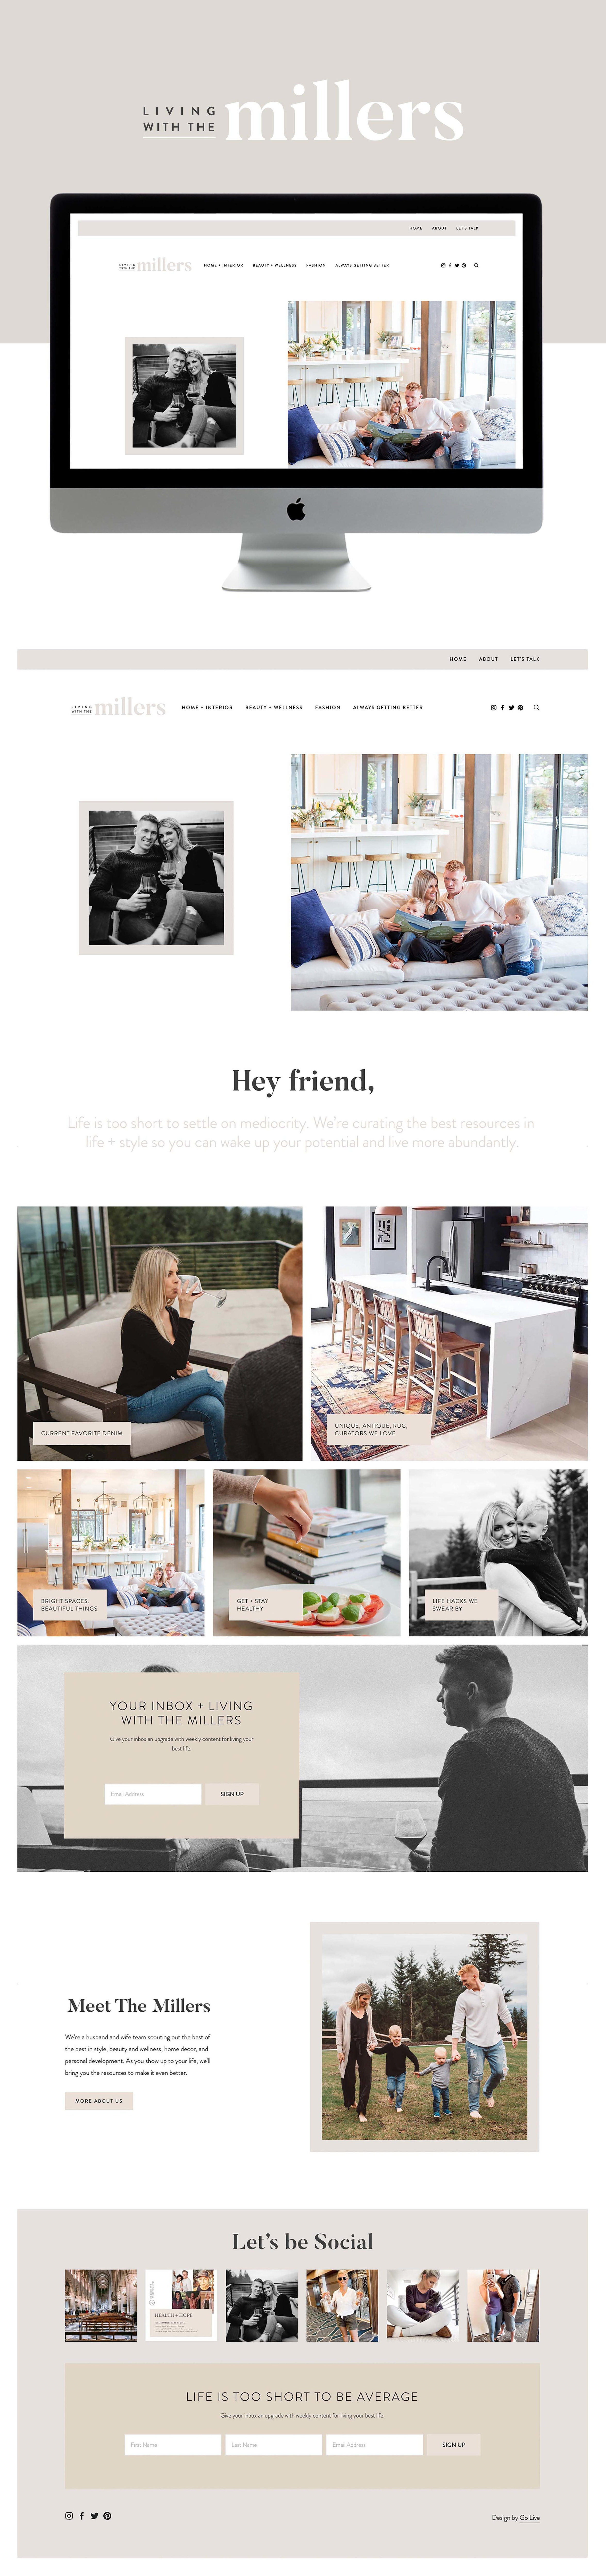 Chic, Minimal and High-End Lifestyle Blog Website Design For Squarespace | By GoLive